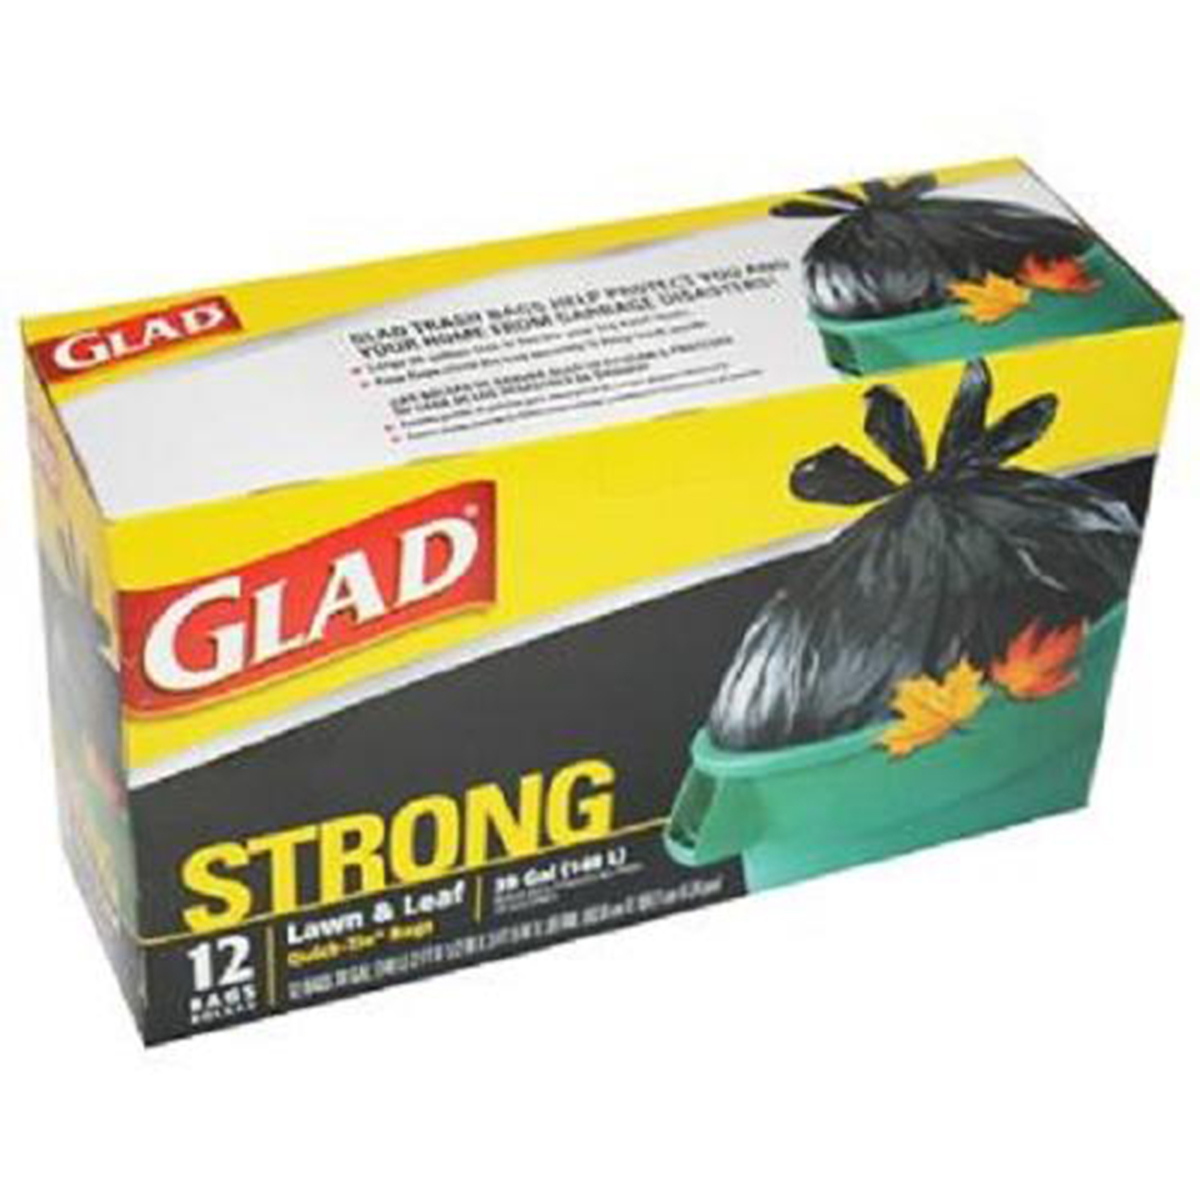 Product Of Glad, Strong Lawn & Leaf Quick Tie Bags, Count 1 (39Gal) - Garbage Bags / Grab Varieties & Flavors